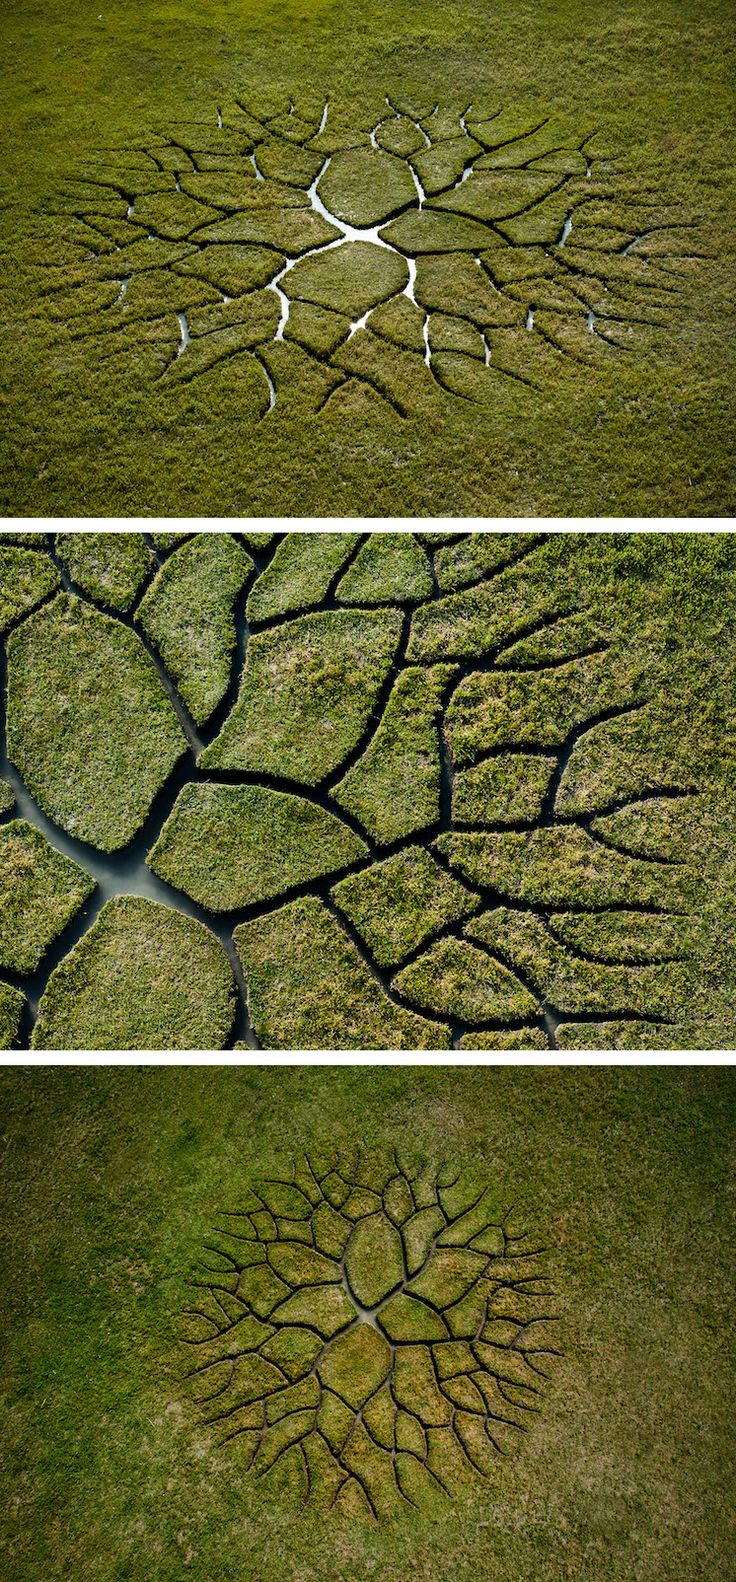 Artist Krisztián Balogh created land art called World Tree. The striking site-specific installation featured a series of small interconnected streams.